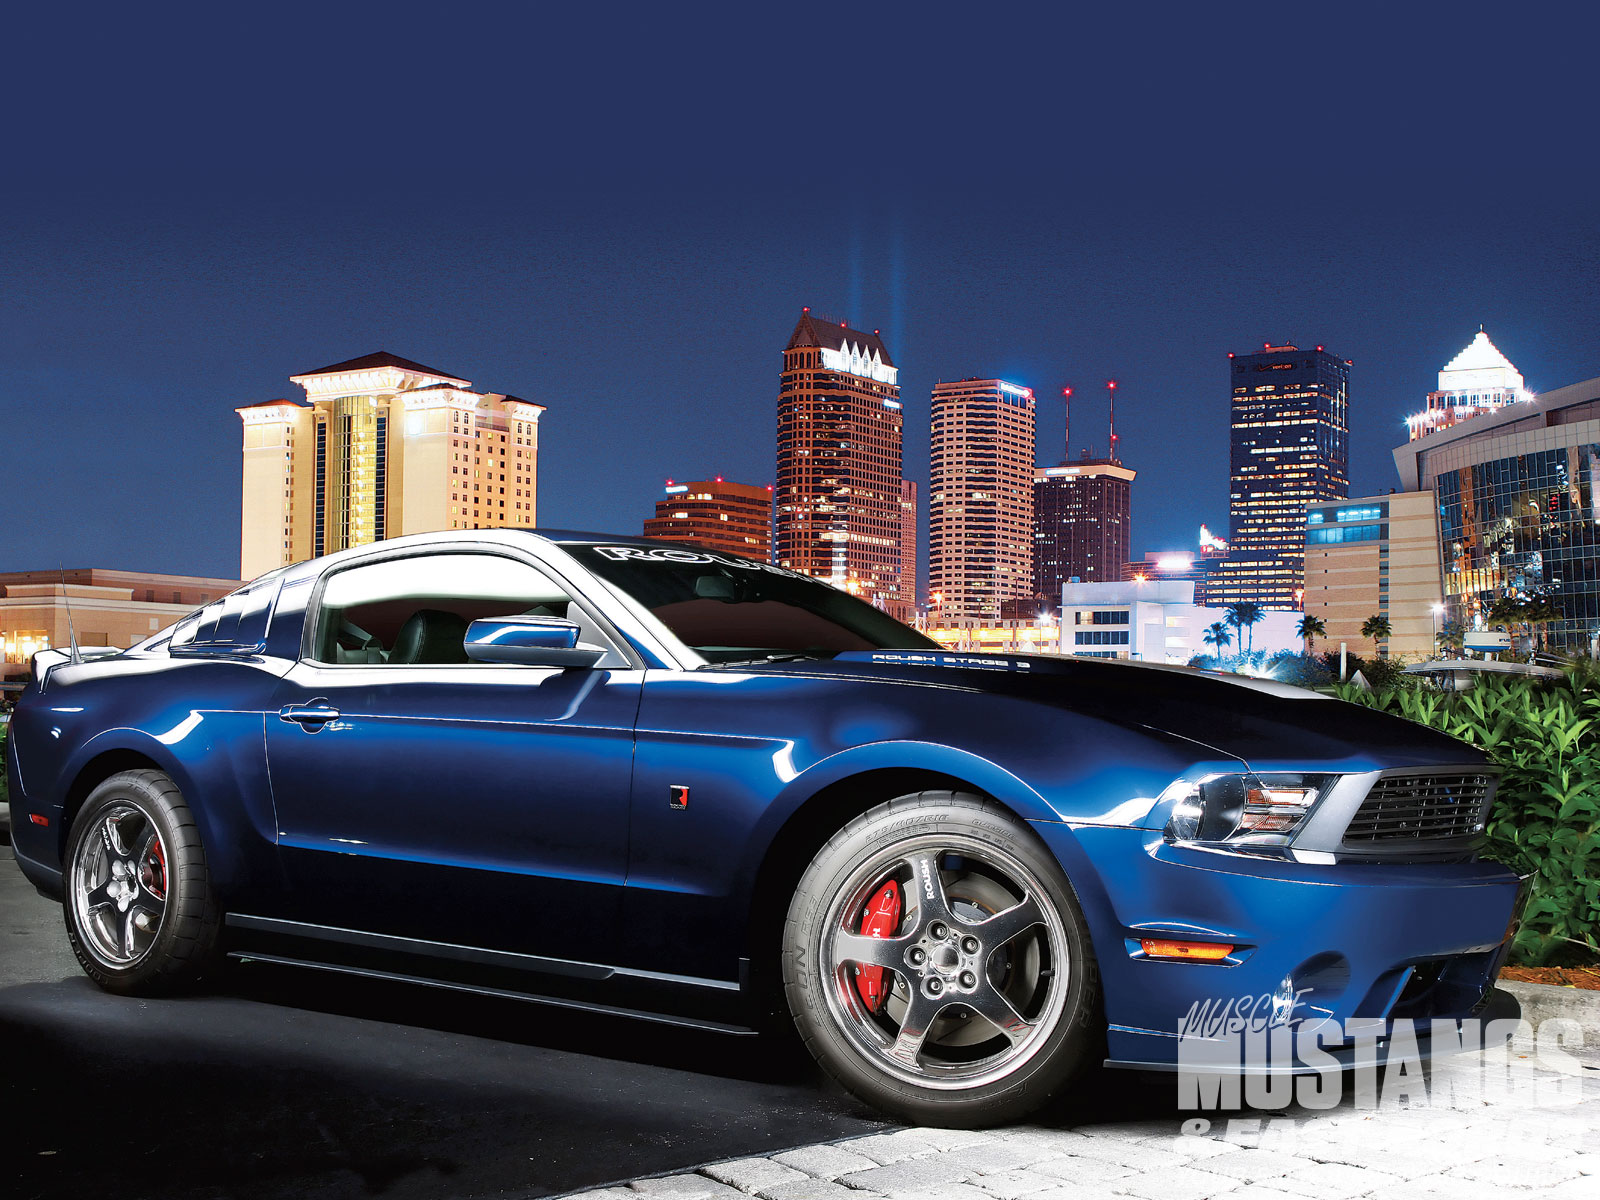 Mmfp 1005 01 O 2010 Roush Stage 3 Mustang Side View